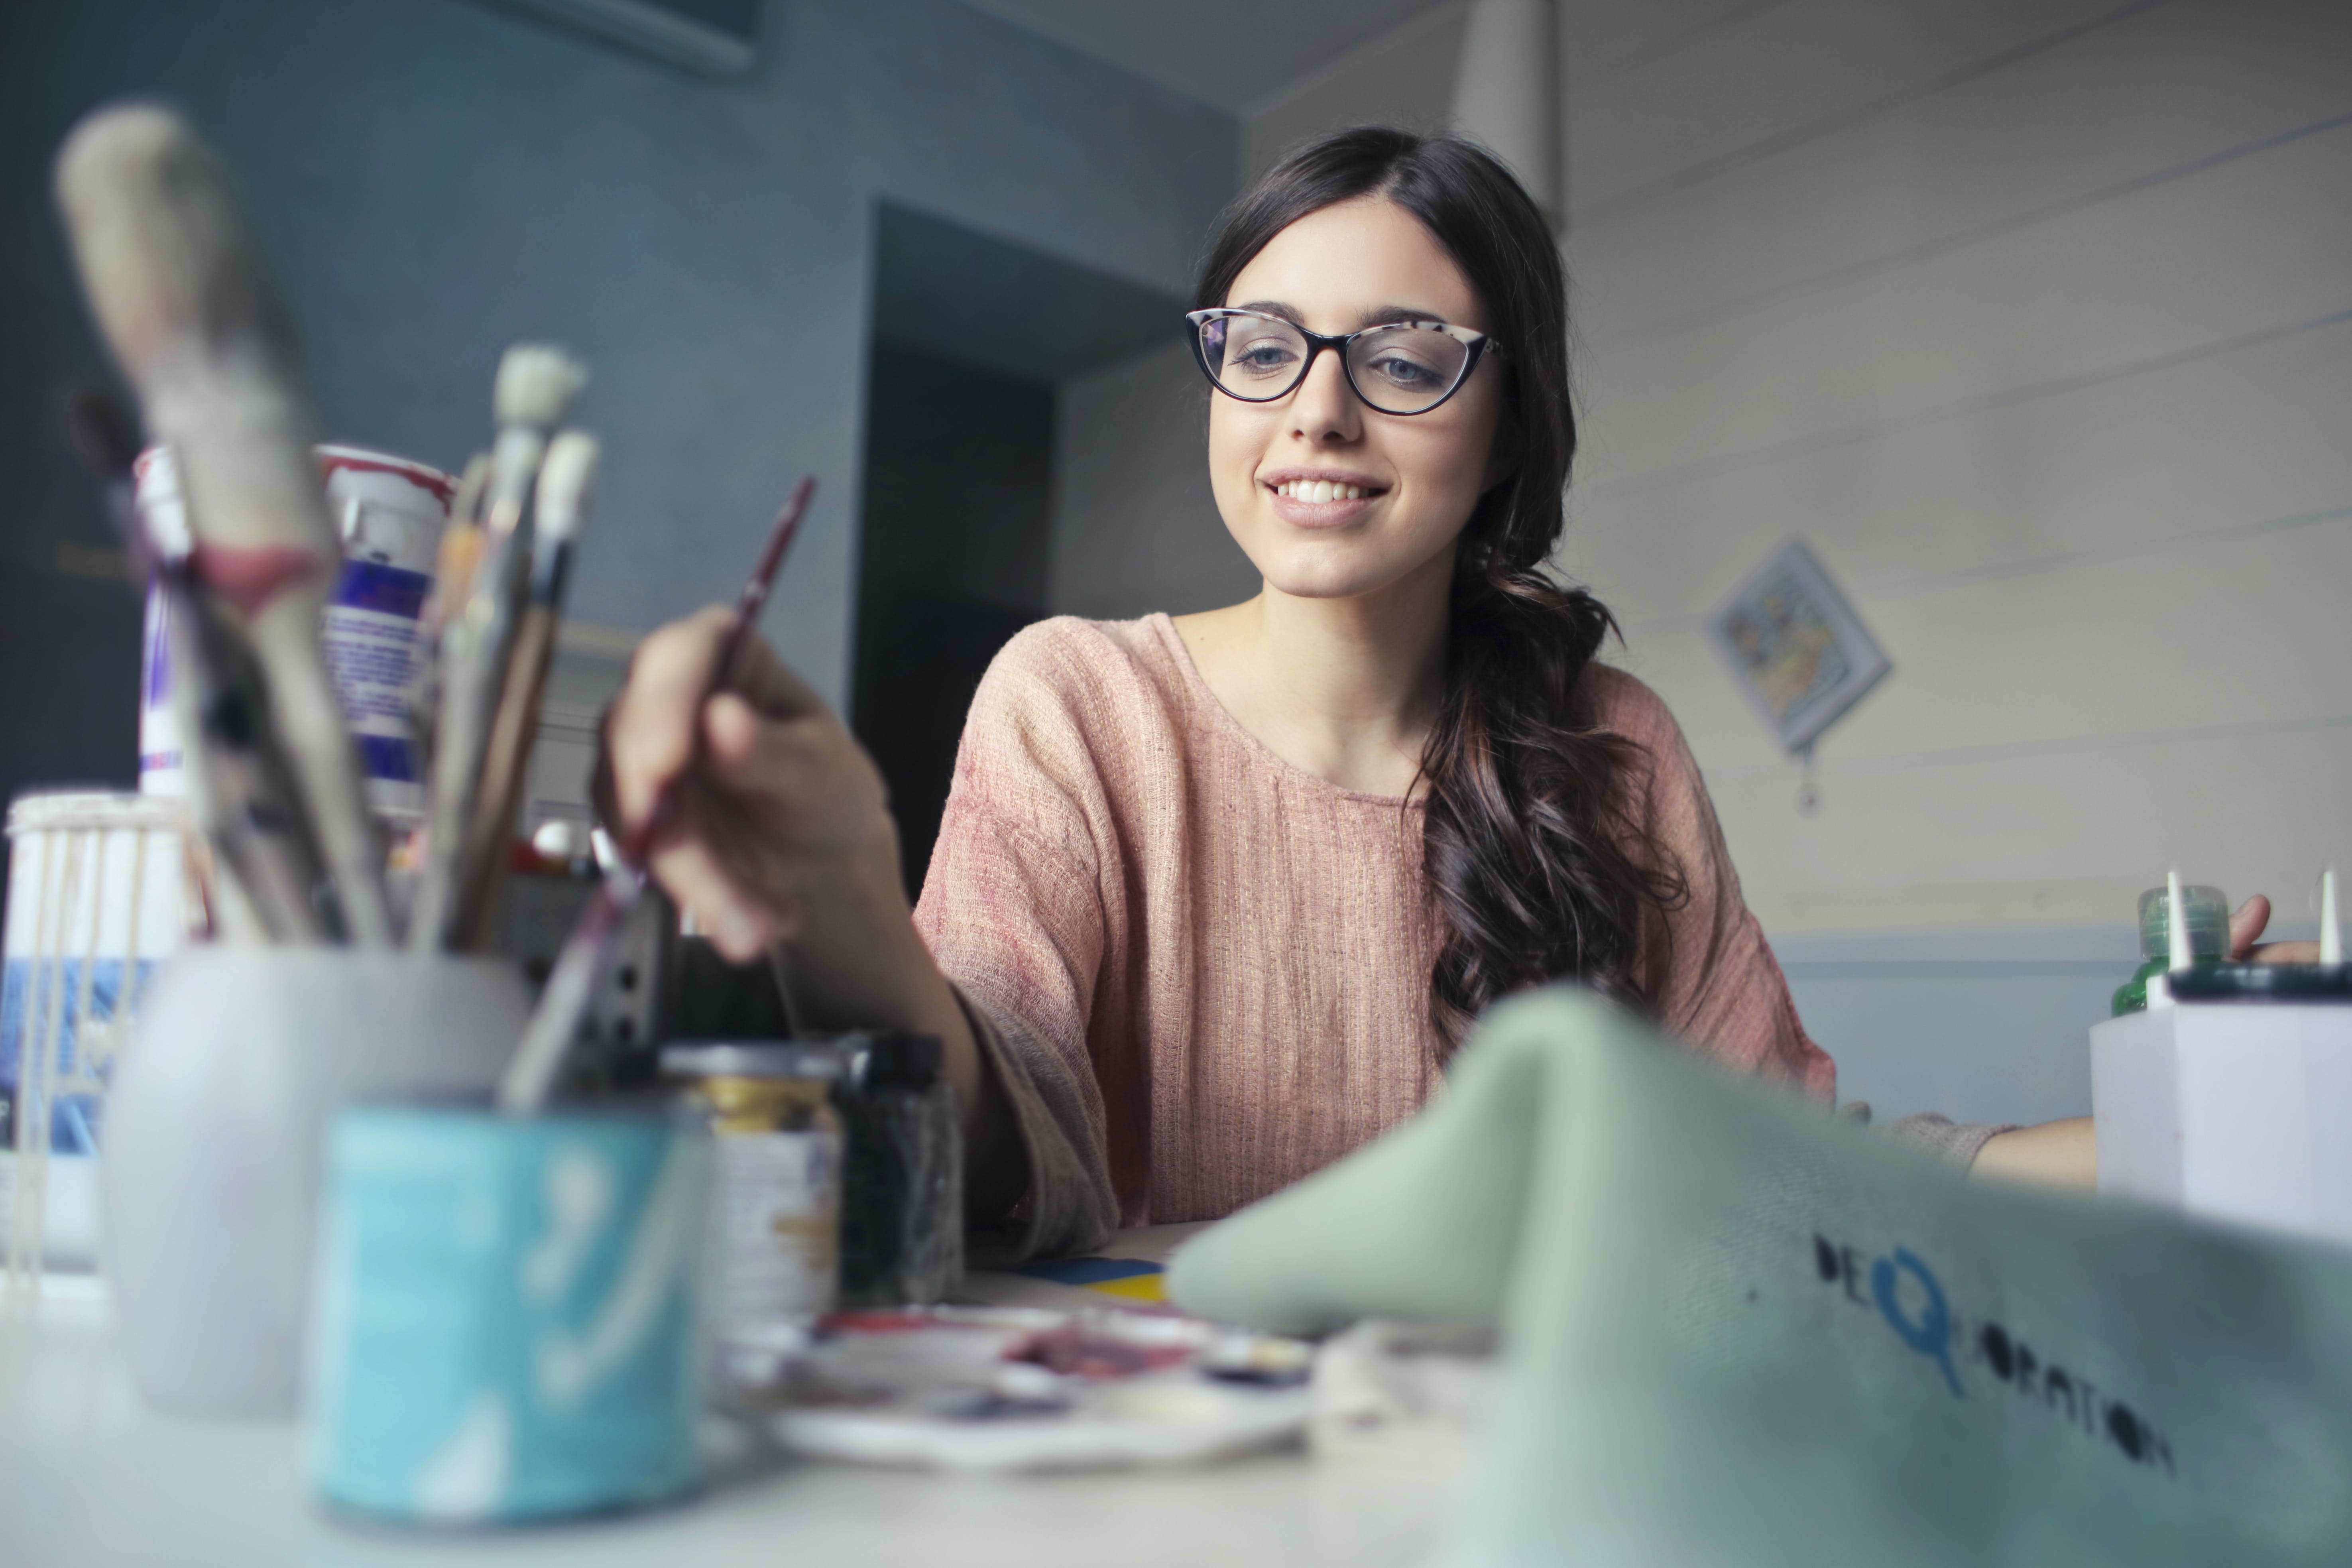 Woman in Brown Long-sleeved Shirt Wearing Eyeglasses Holding Paint Brush